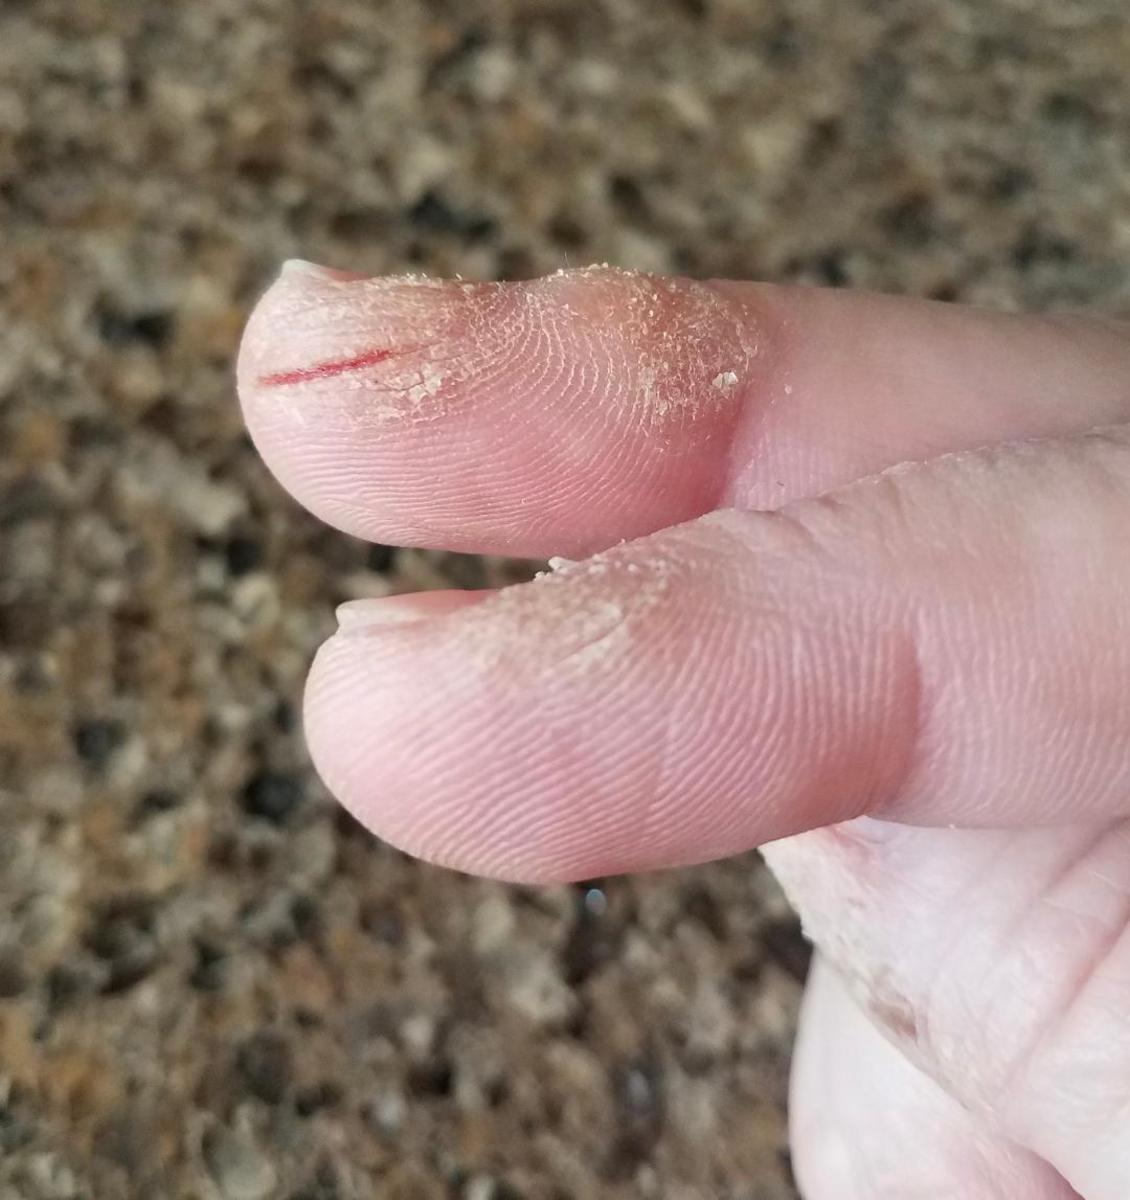 My splitting fingers.